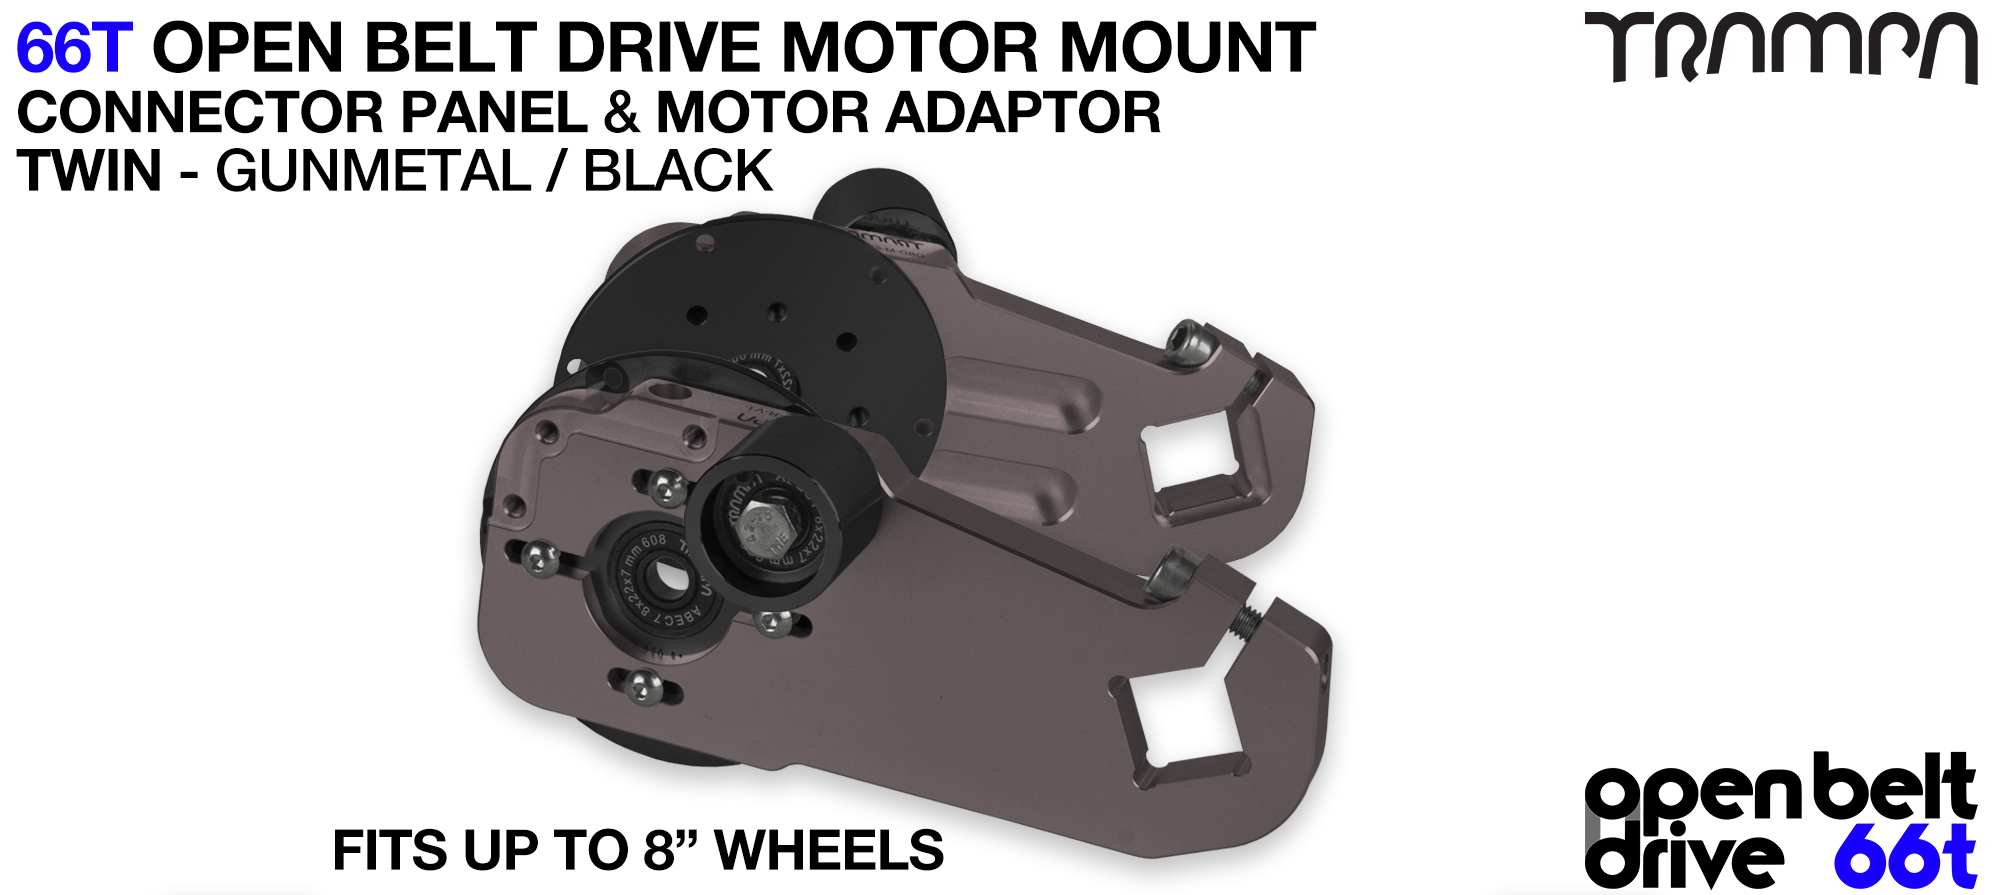 66T OPEN BELT DRIVE Motor Mount & Motor Adaptor - TWIN GUNMETAL